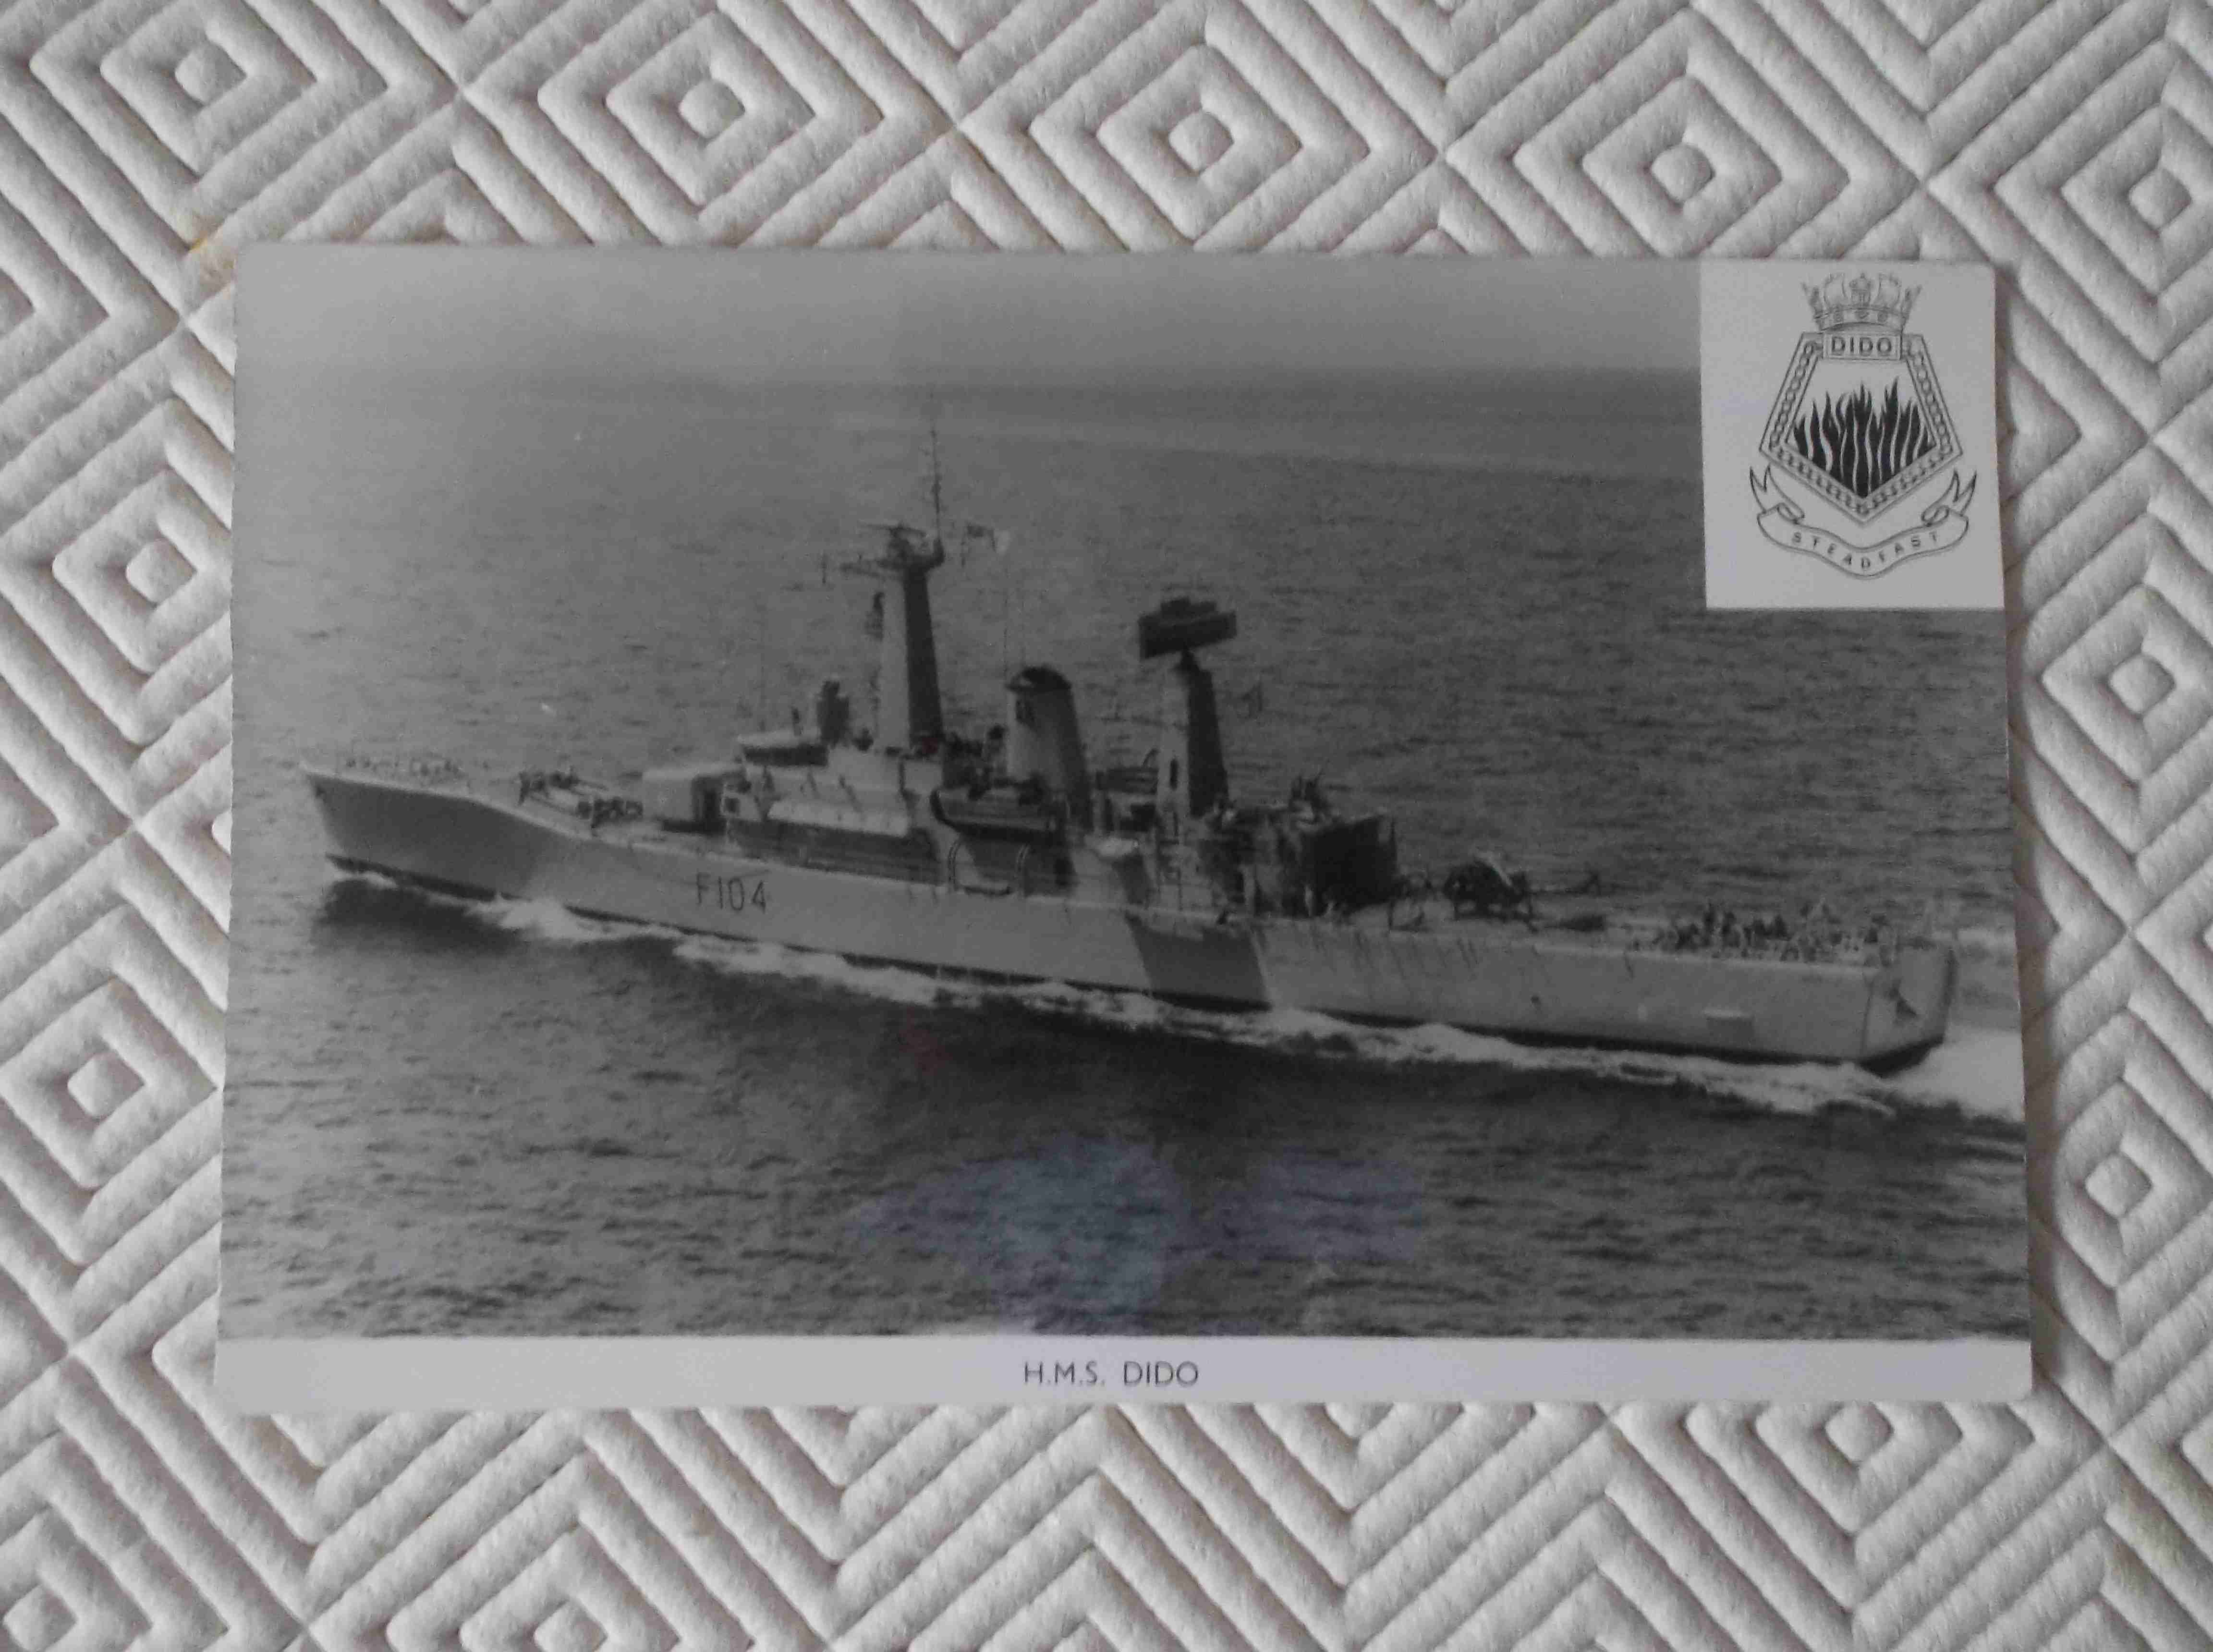 POSTCARD SIZE PHOTOGRAPH OF THE ROYAL NAVAL VESSEL HMS DIDO